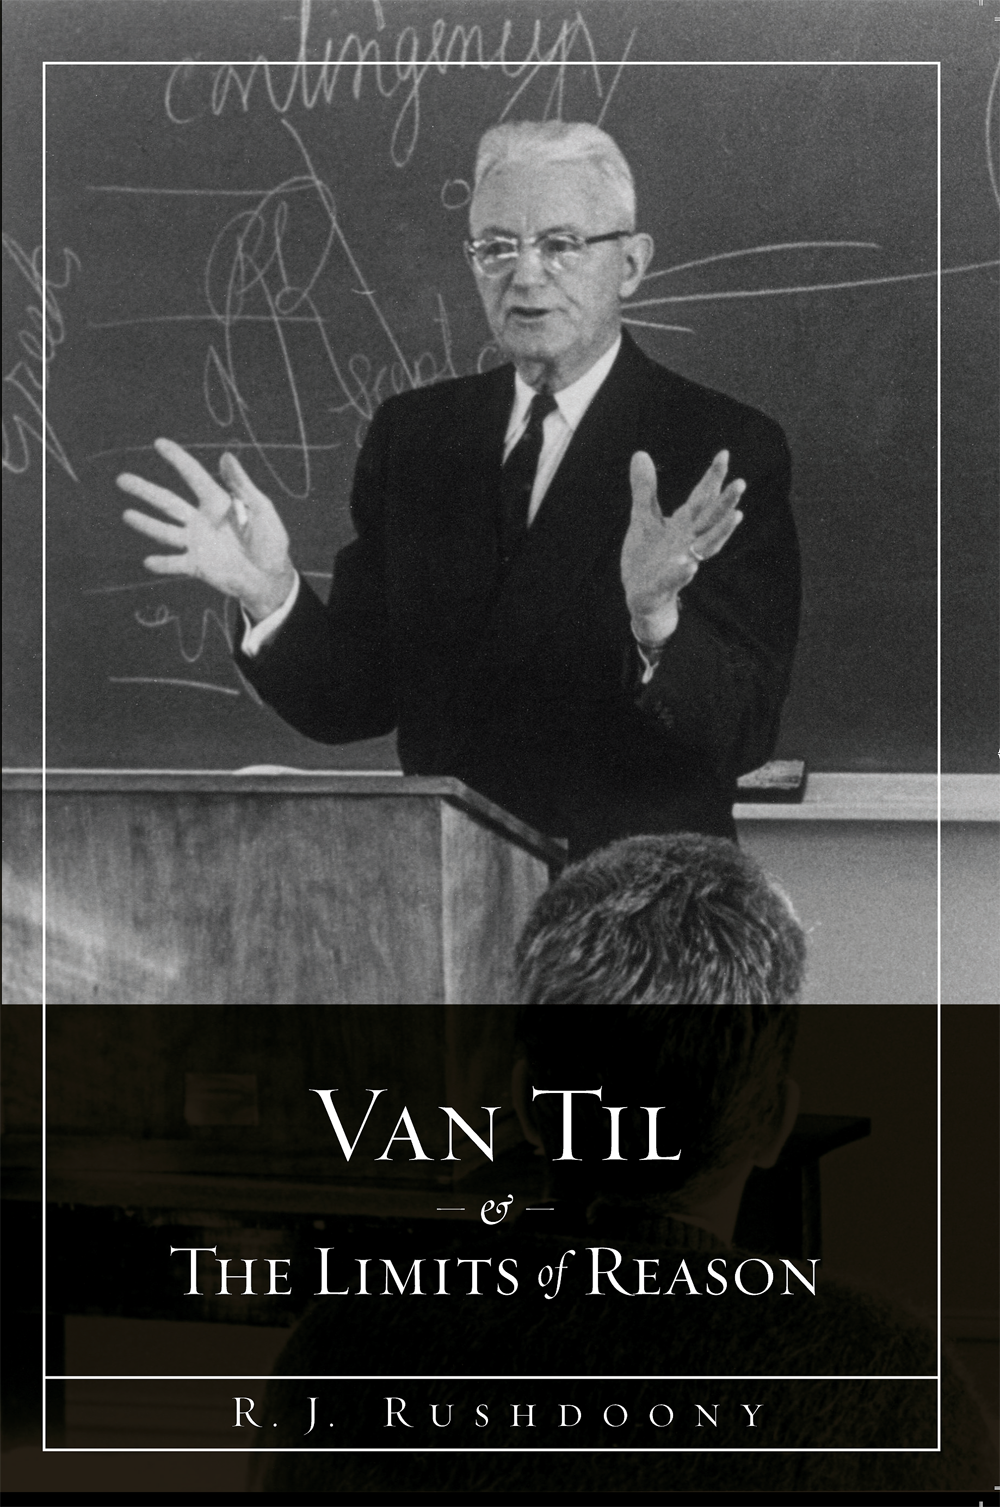 Van Til and the Limits of Reason